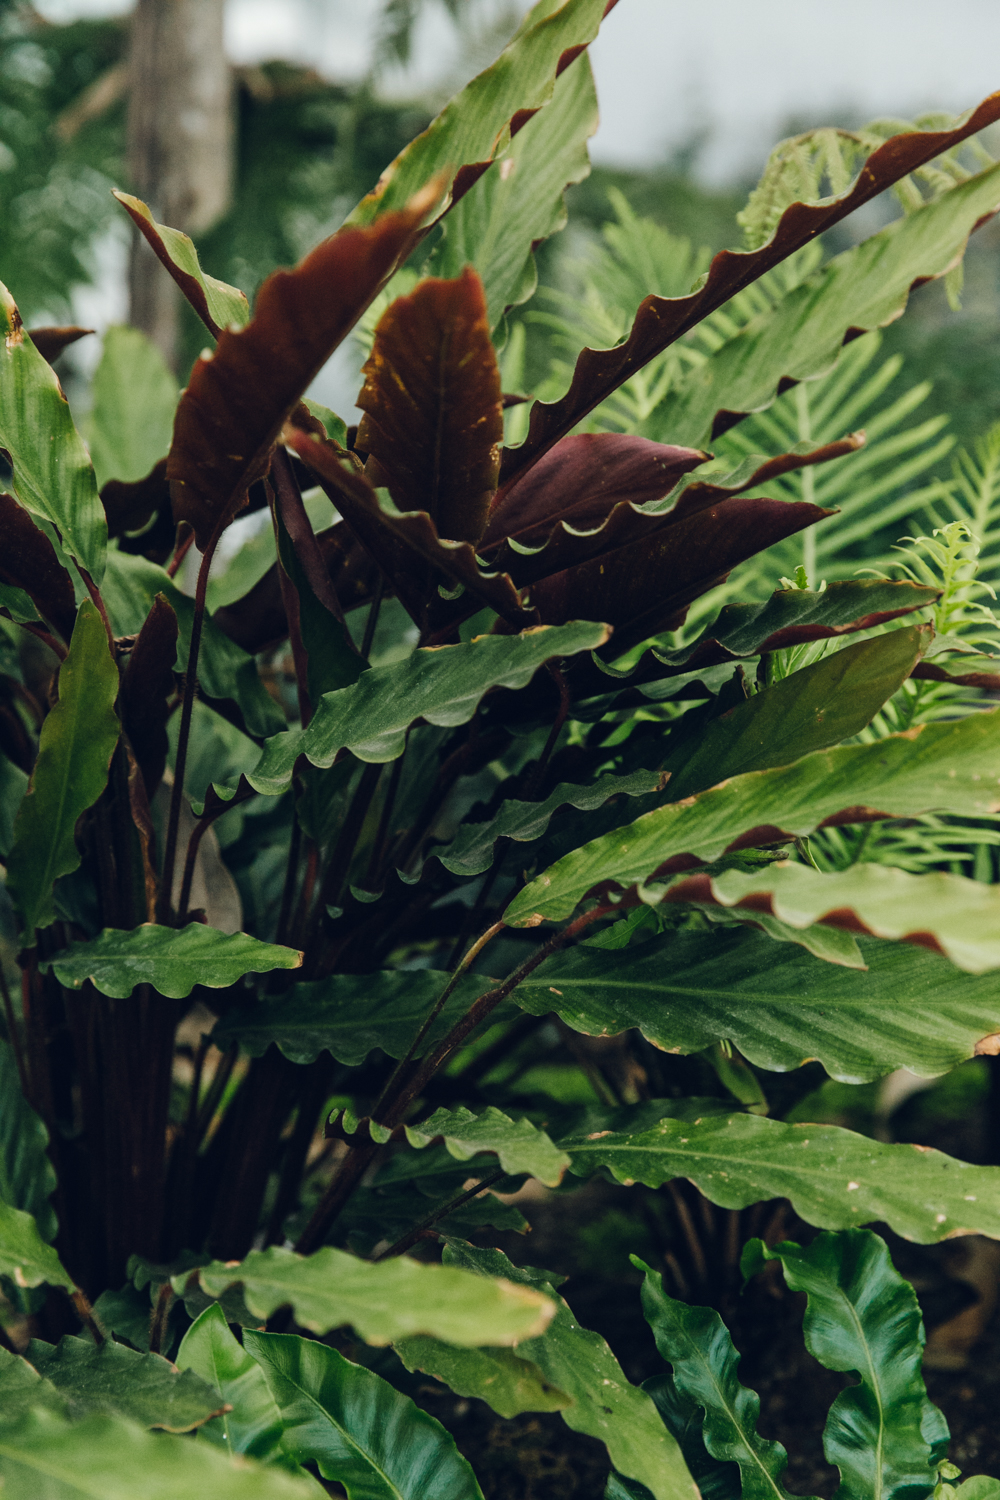 Haarkon plants sky garden skygarden greenery fern fernery london